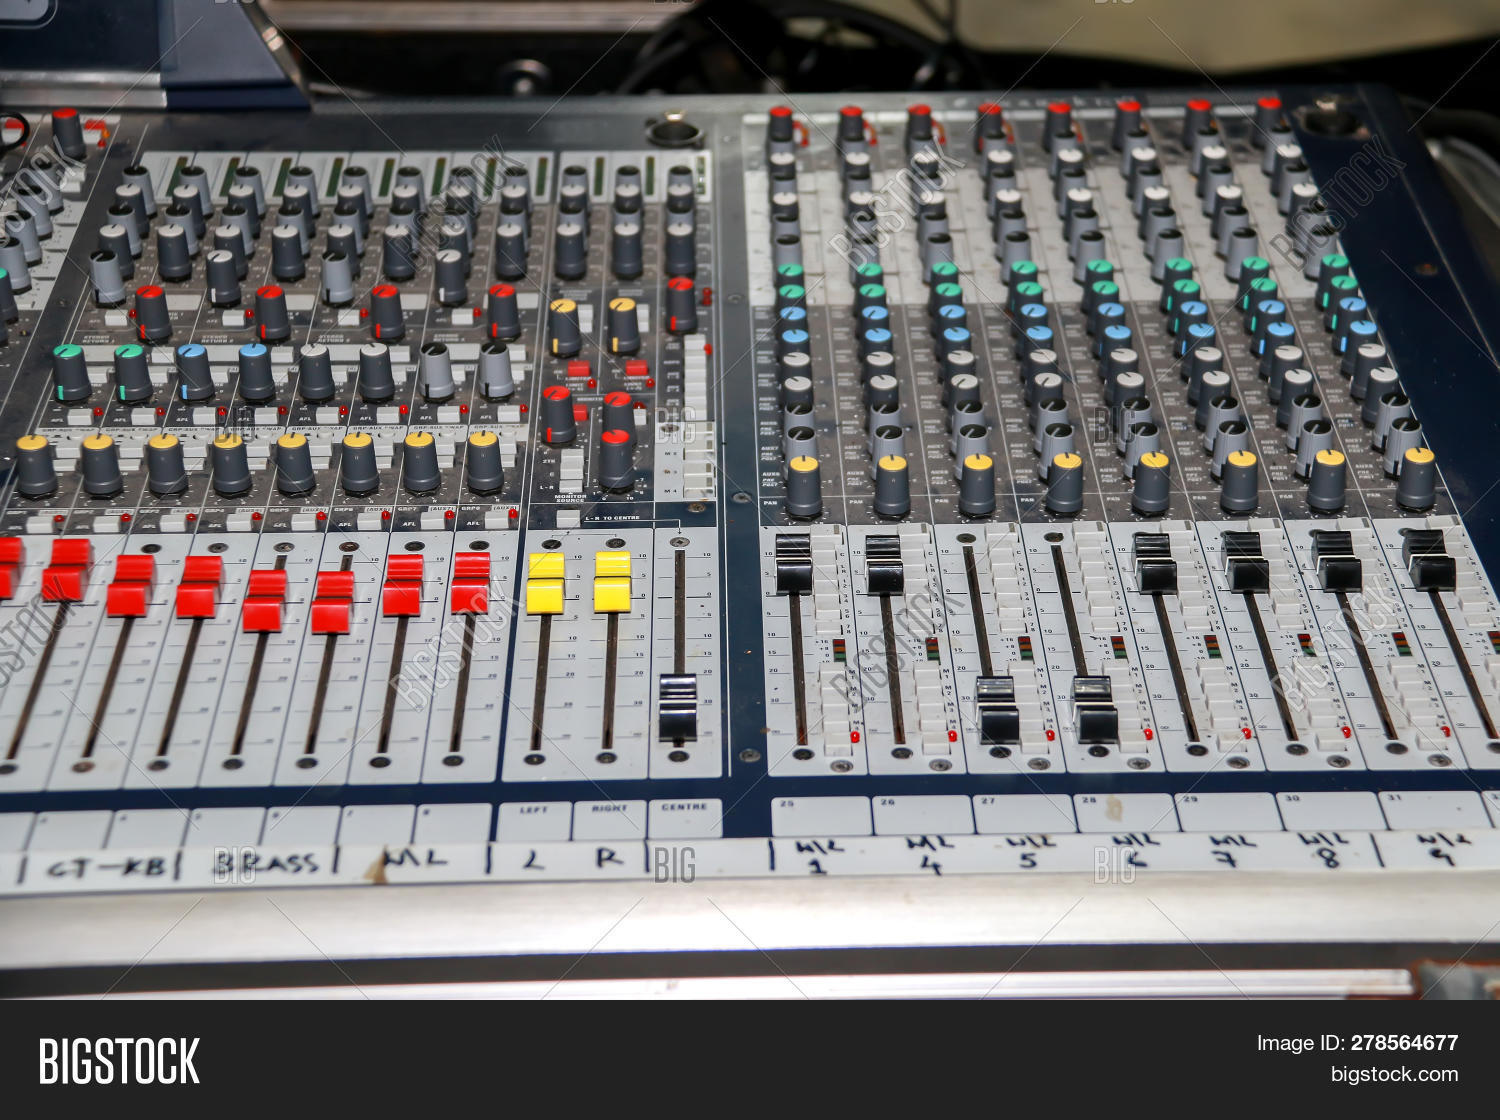 Sound Mixer Equalizer Image & Photo (Free Trial) | Bigstock